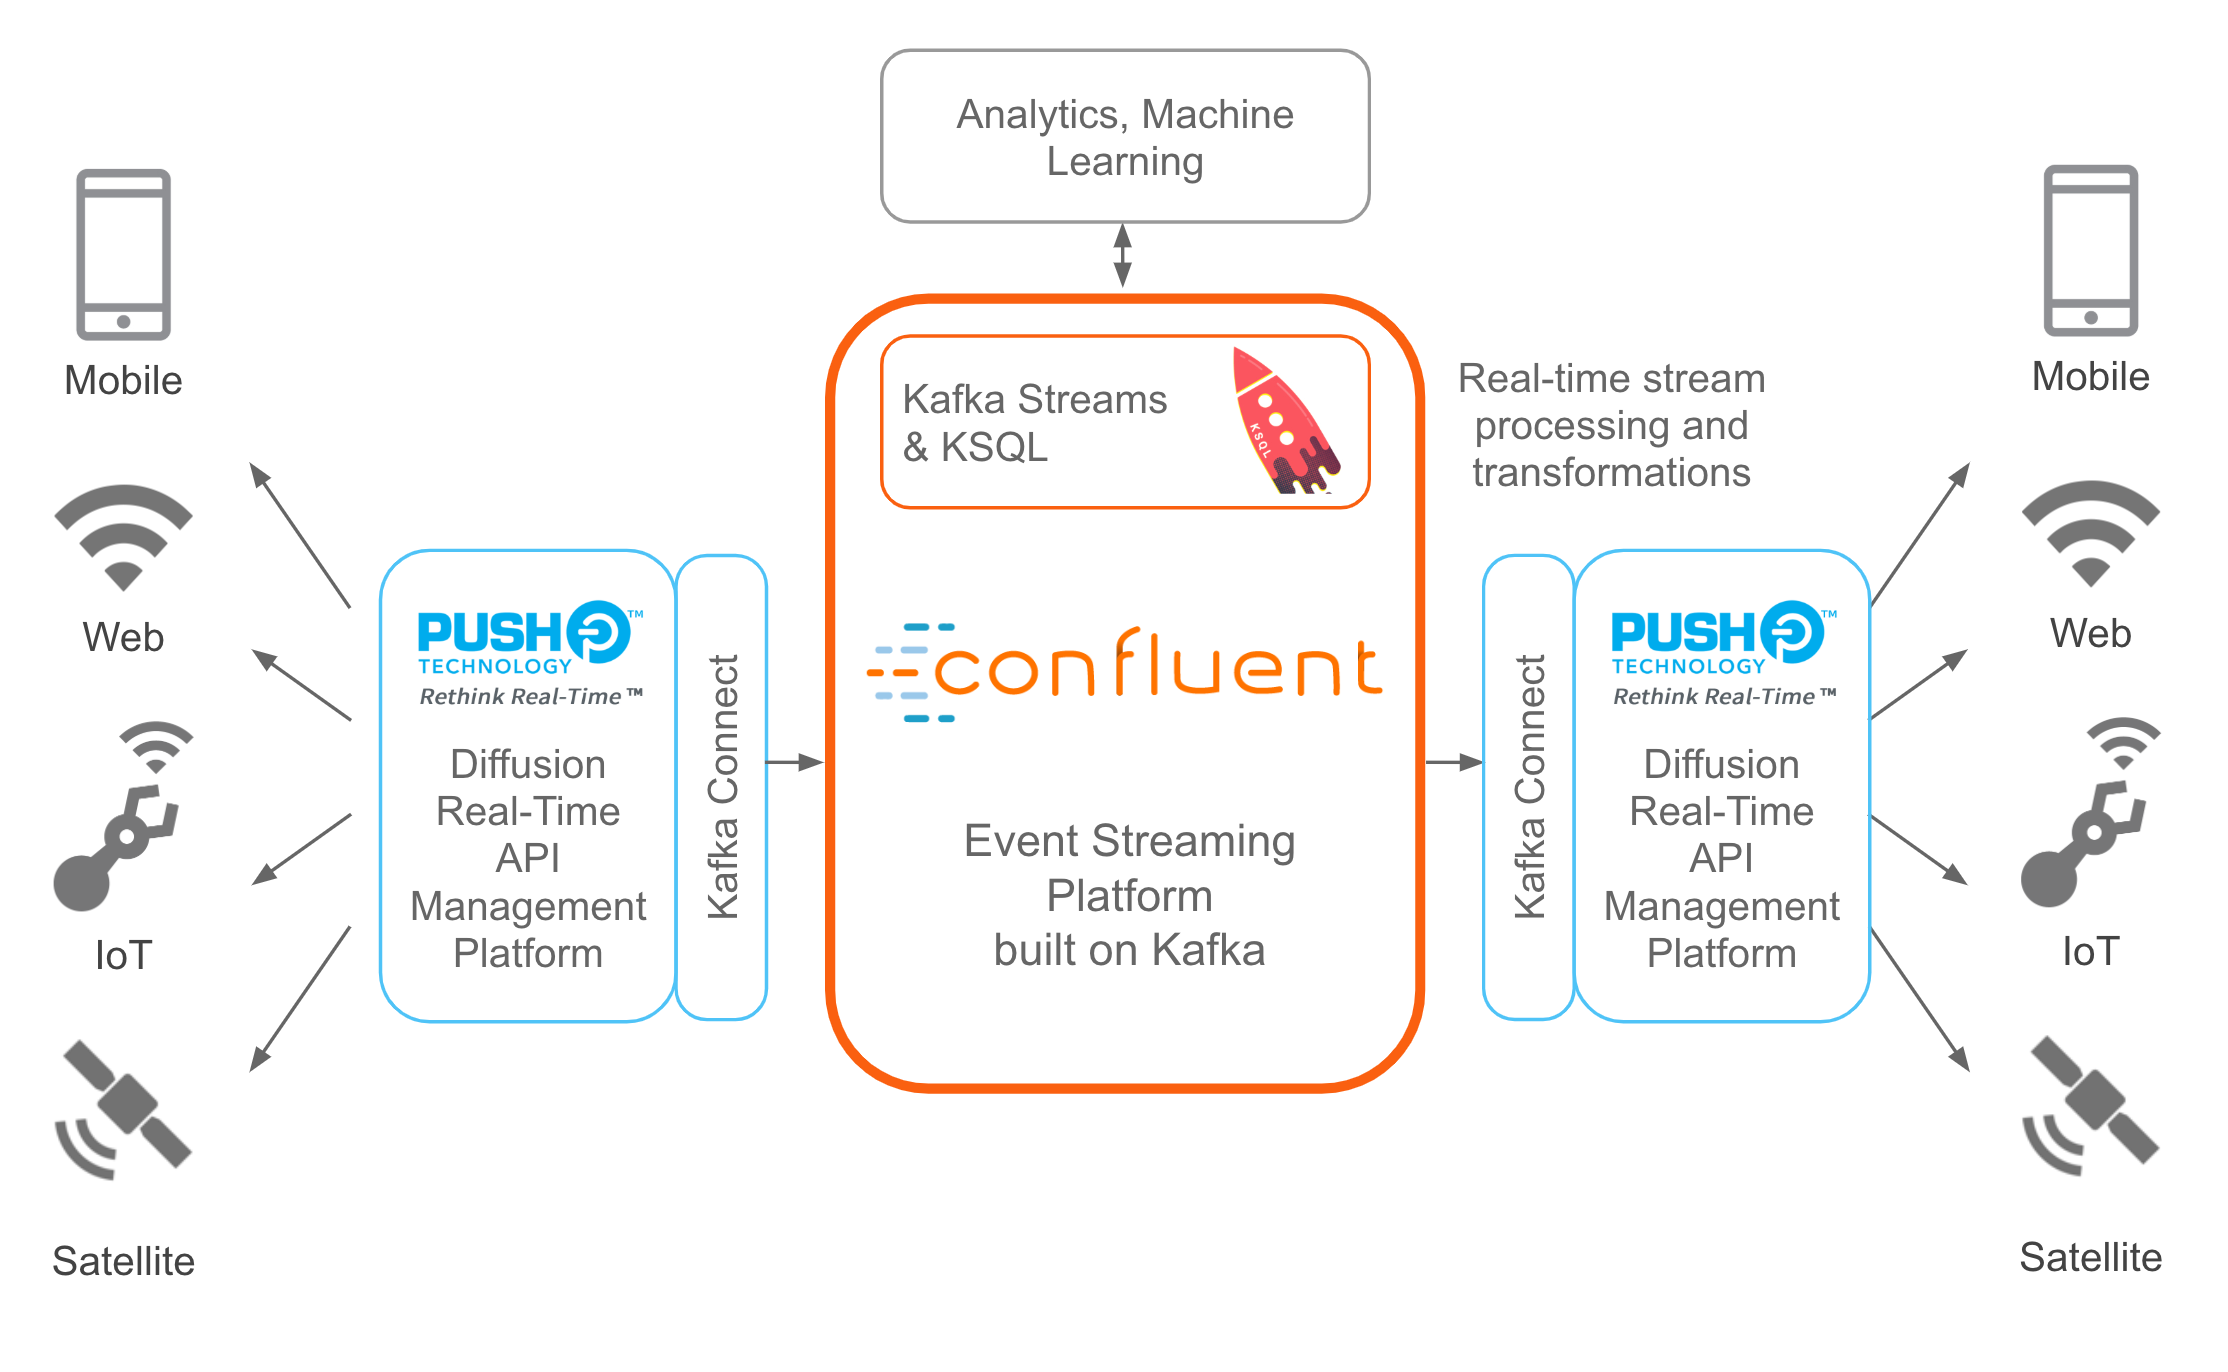 Confluent Platform and Diffusion Integration